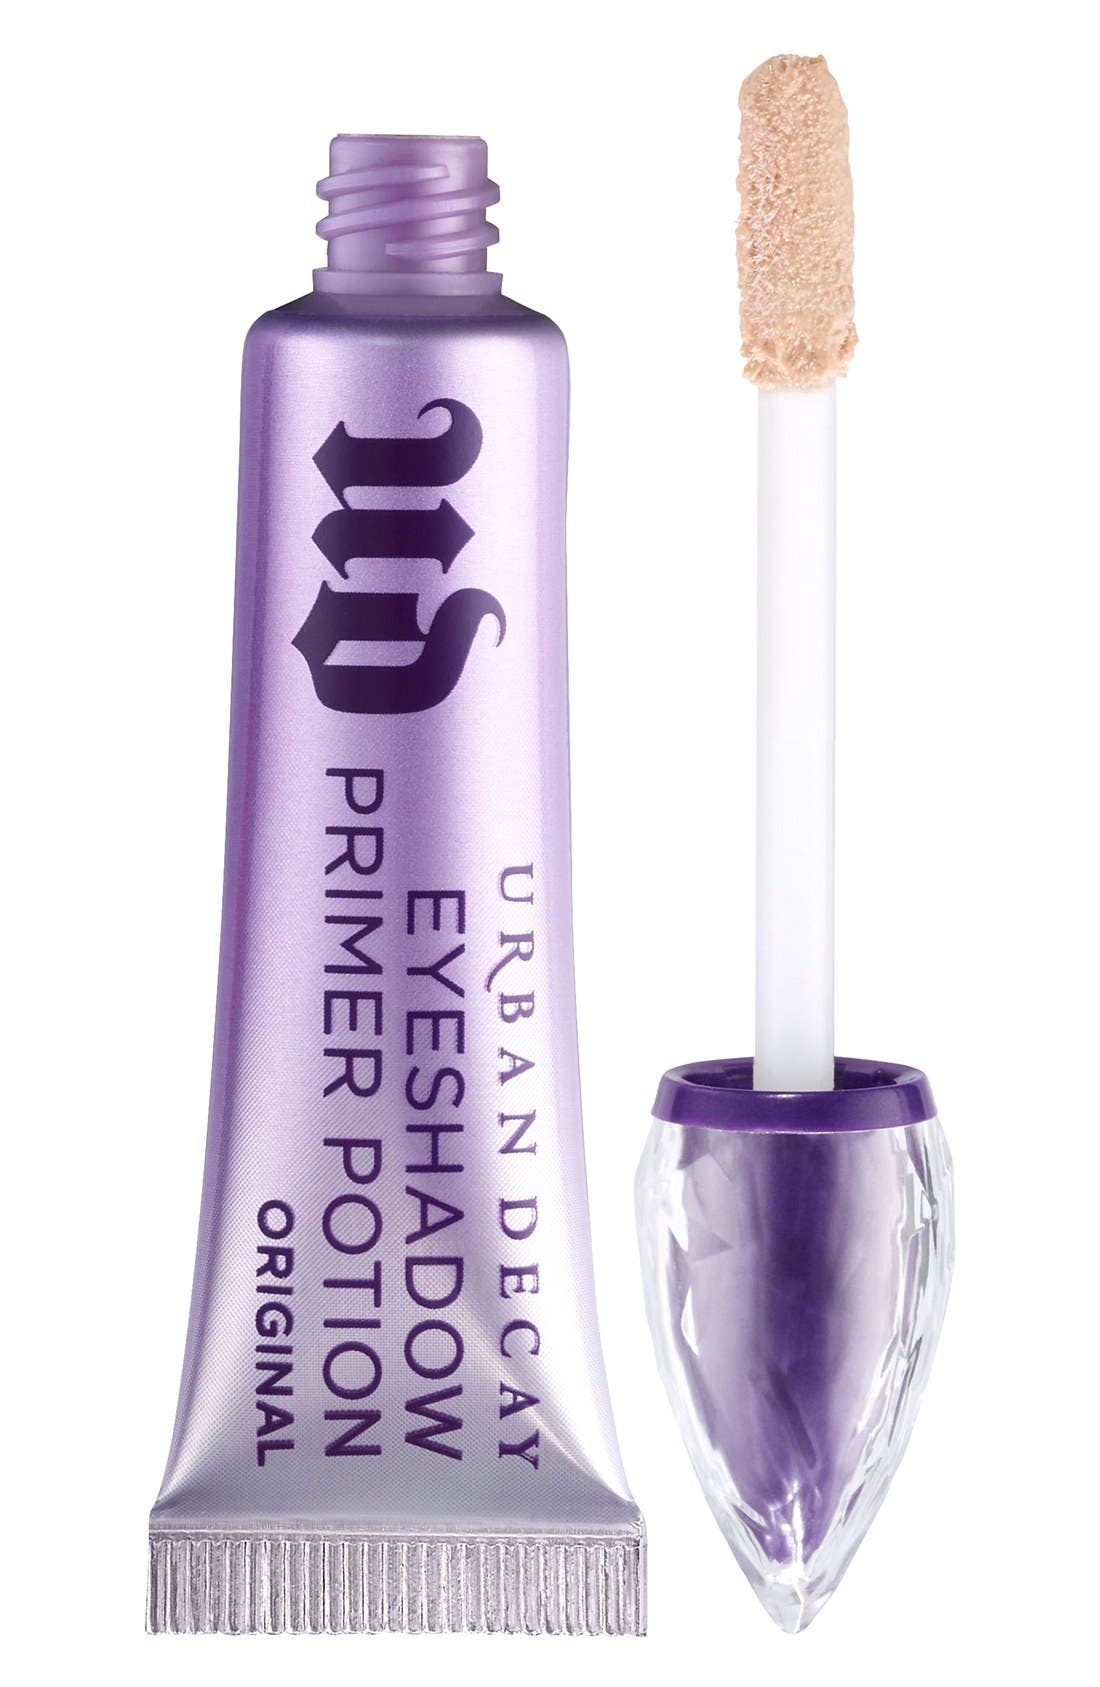 Original Eyeshadow Primer Potion,                             Main thumbnail 1, color,                             NO COLOR